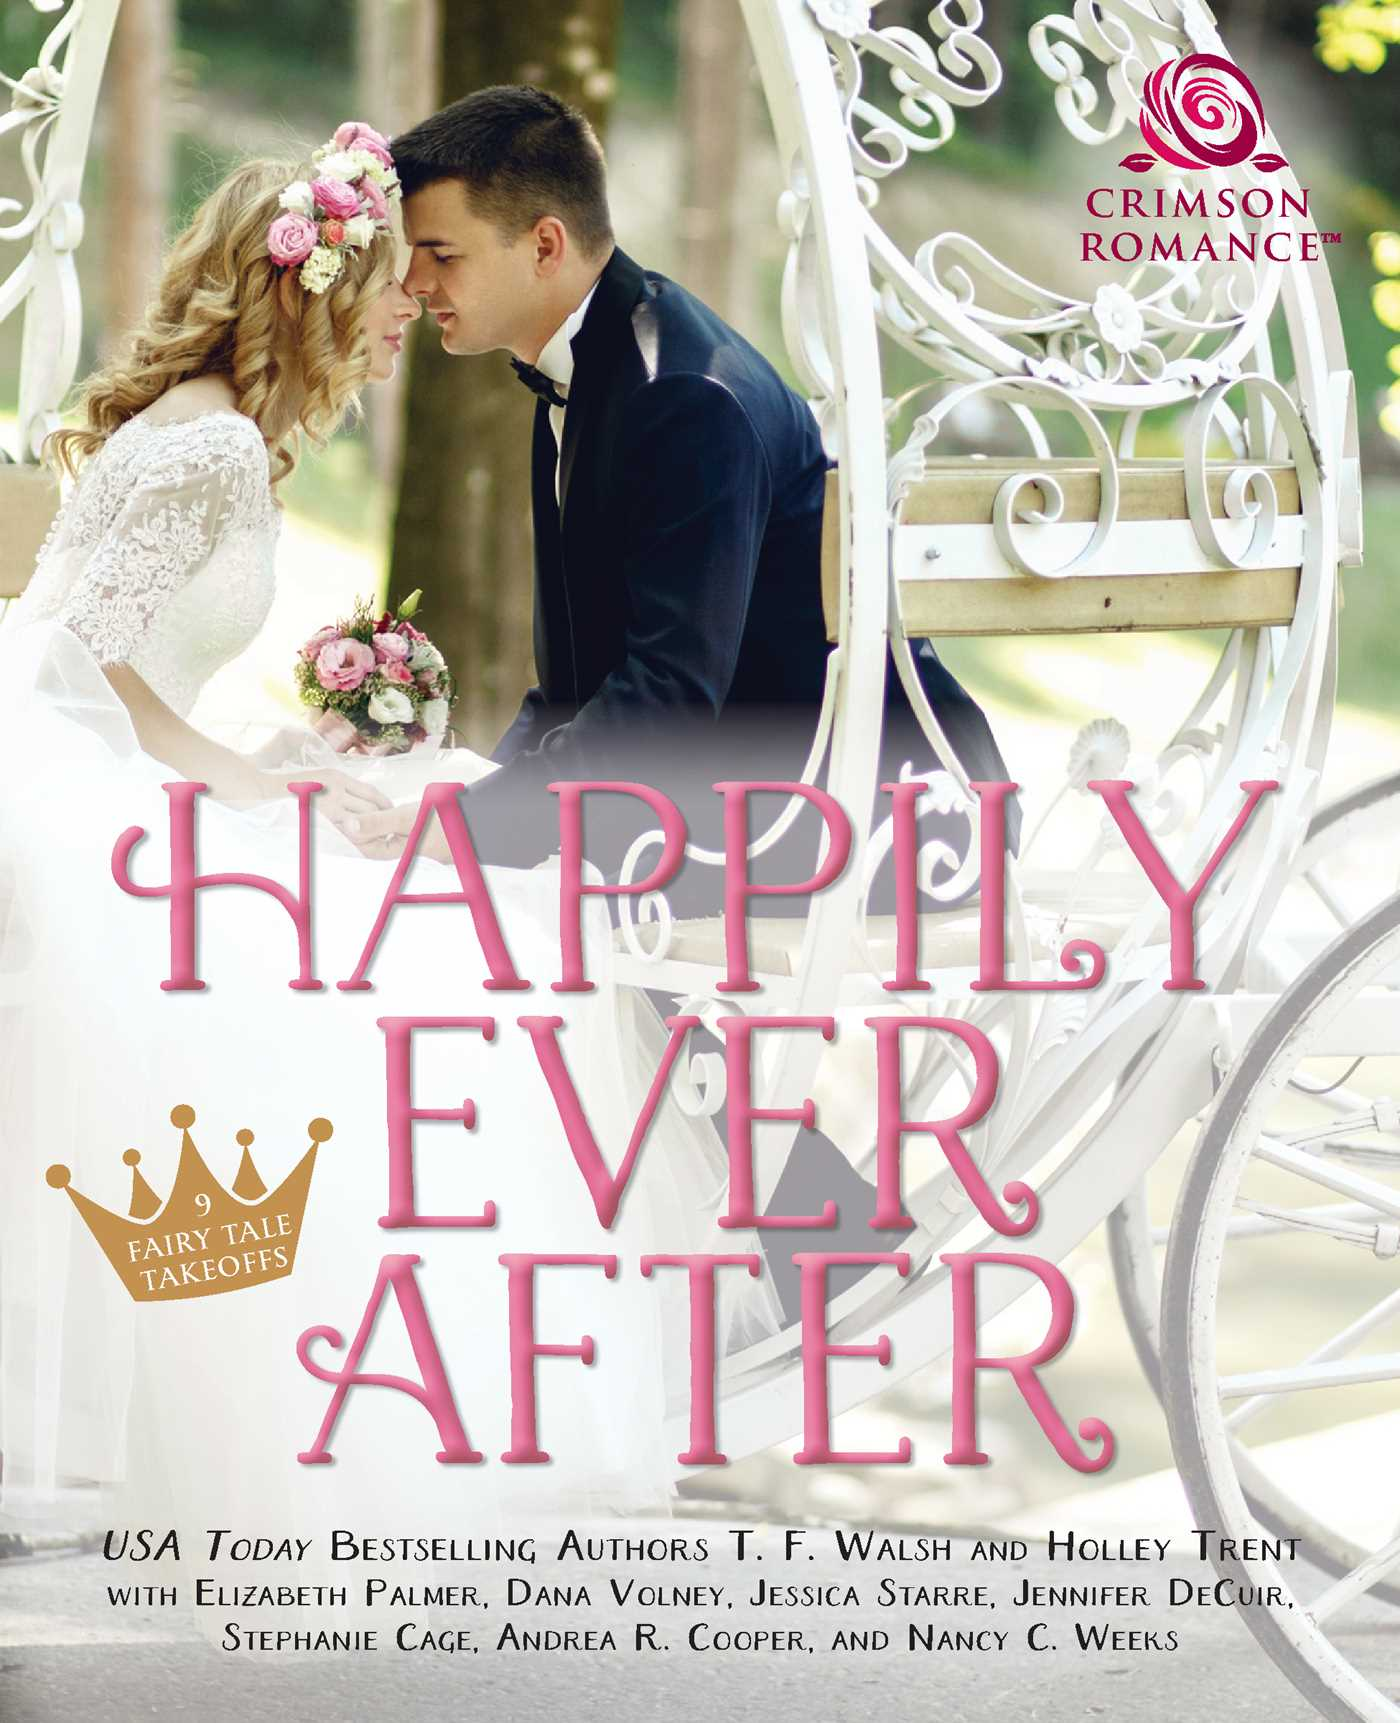 Happily ever after 9781507205181 hr